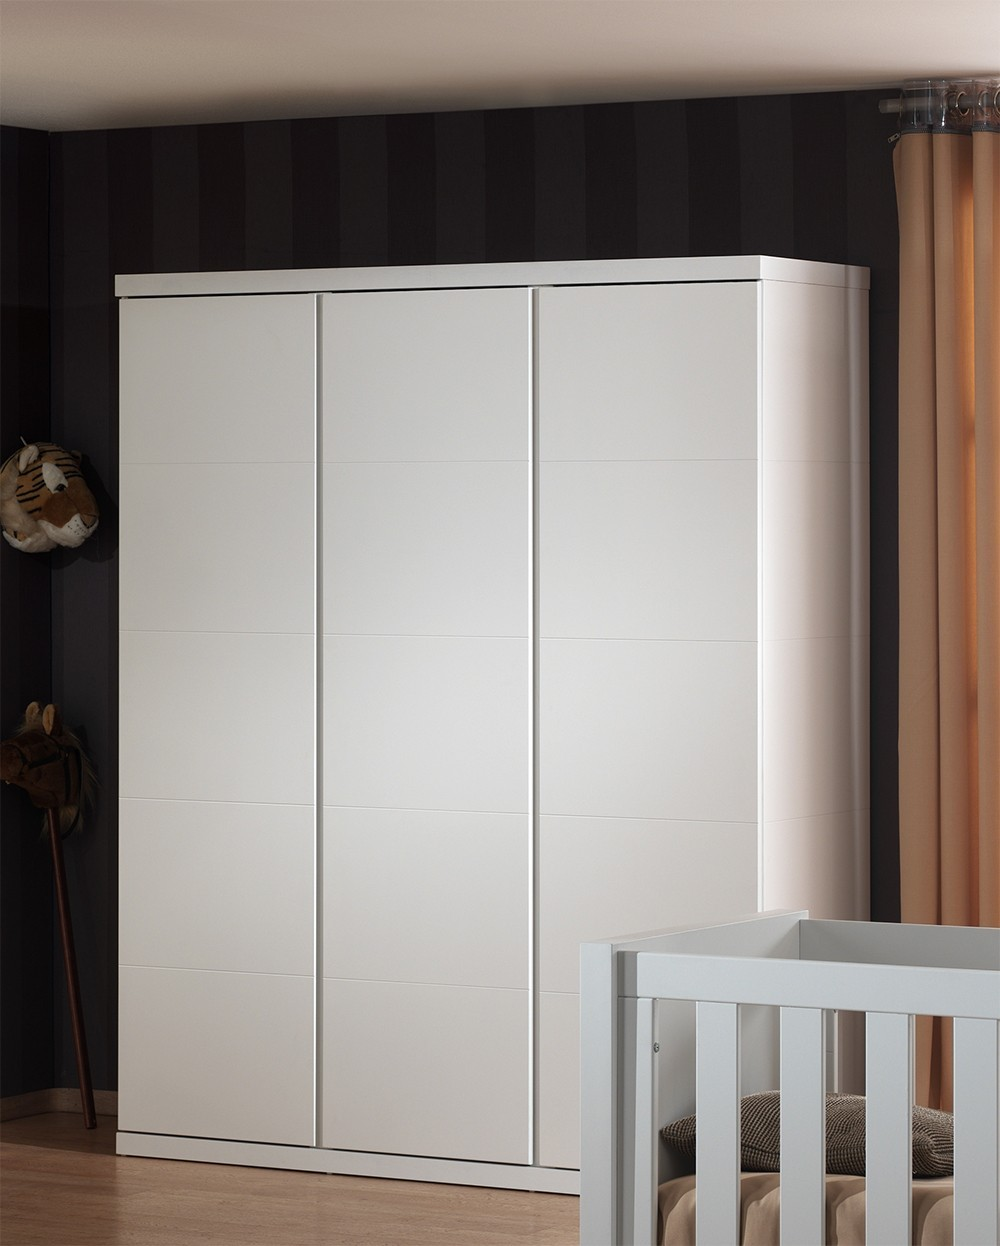 armoire enfant design portes lorene coloris blanc with armoire design blanche. Black Bedroom Furniture Sets. Home Design Ideas